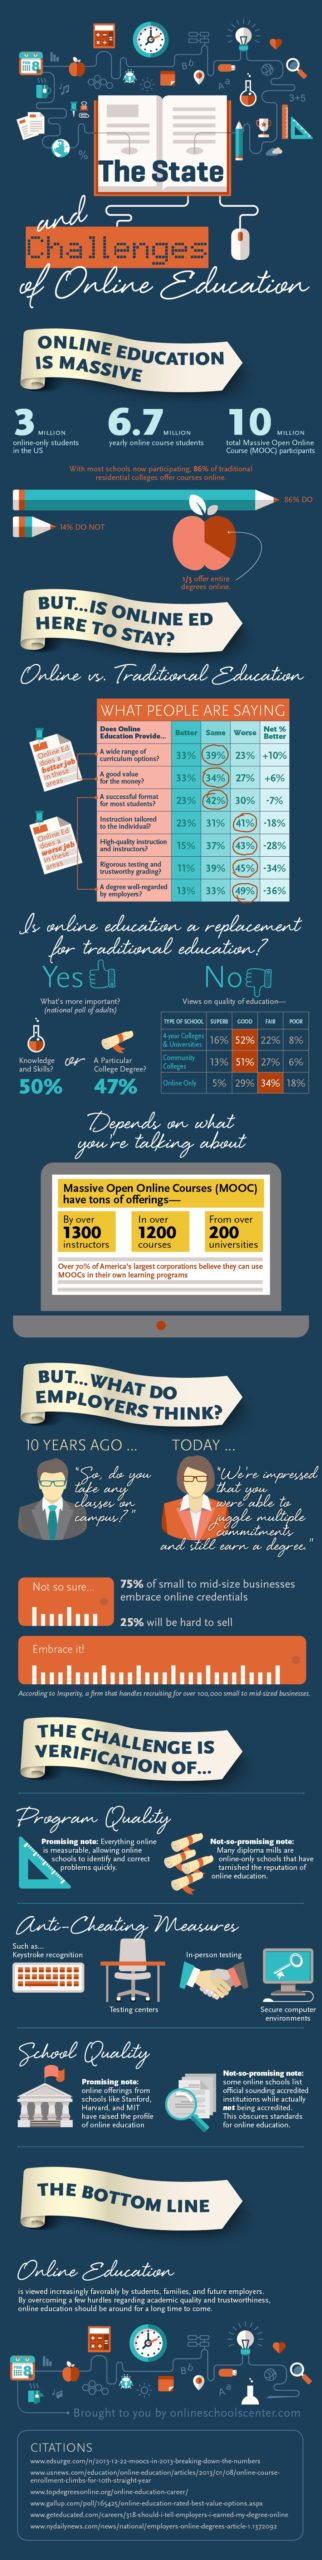 online education issues